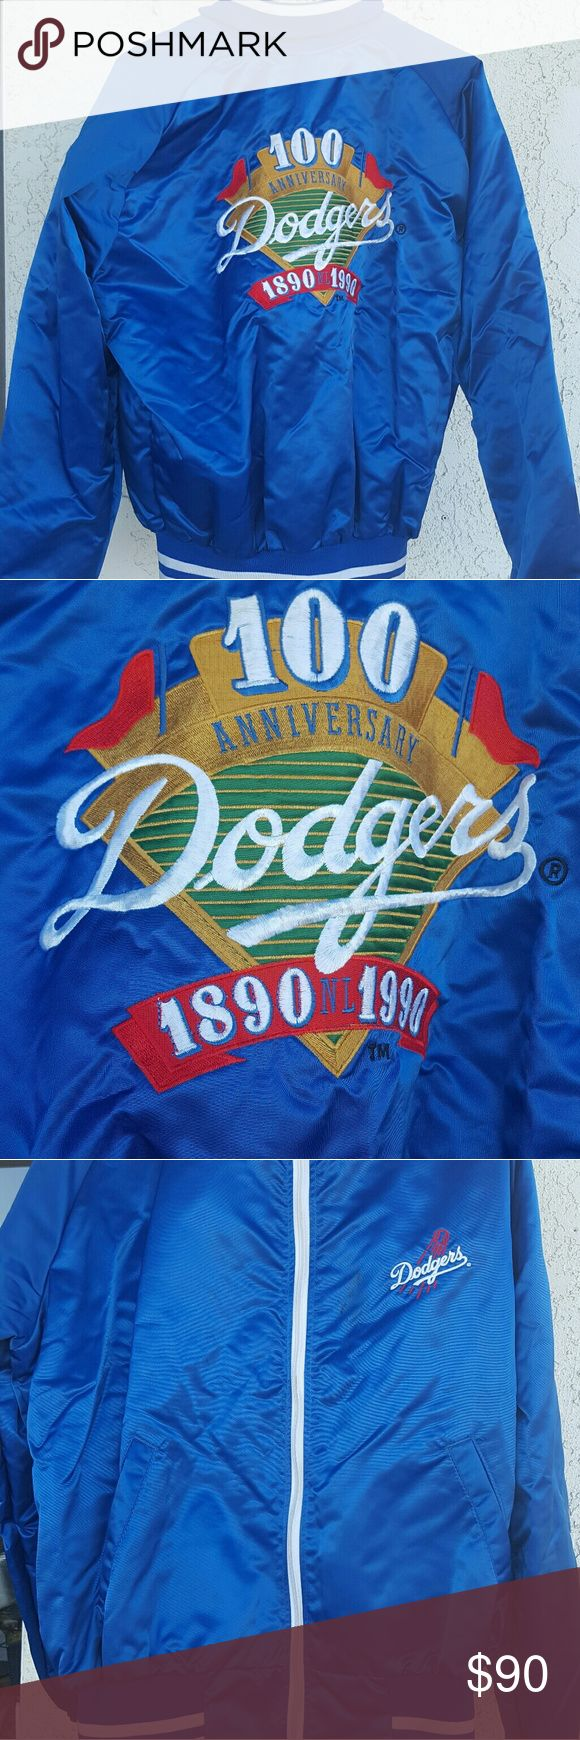 LA Dodger Vintage 90s 100 year Anniversary jacket Vintage LA Dodgers original jacket. Sz XL fits like a modern large. Some small stains seen pictured, can probably be removed withbdry cleaning. Price reflects this. Inside in good condition. Please message for more pics:) urban for exposure Urban Outfitters Jackets & Coats Bomber & Varsity